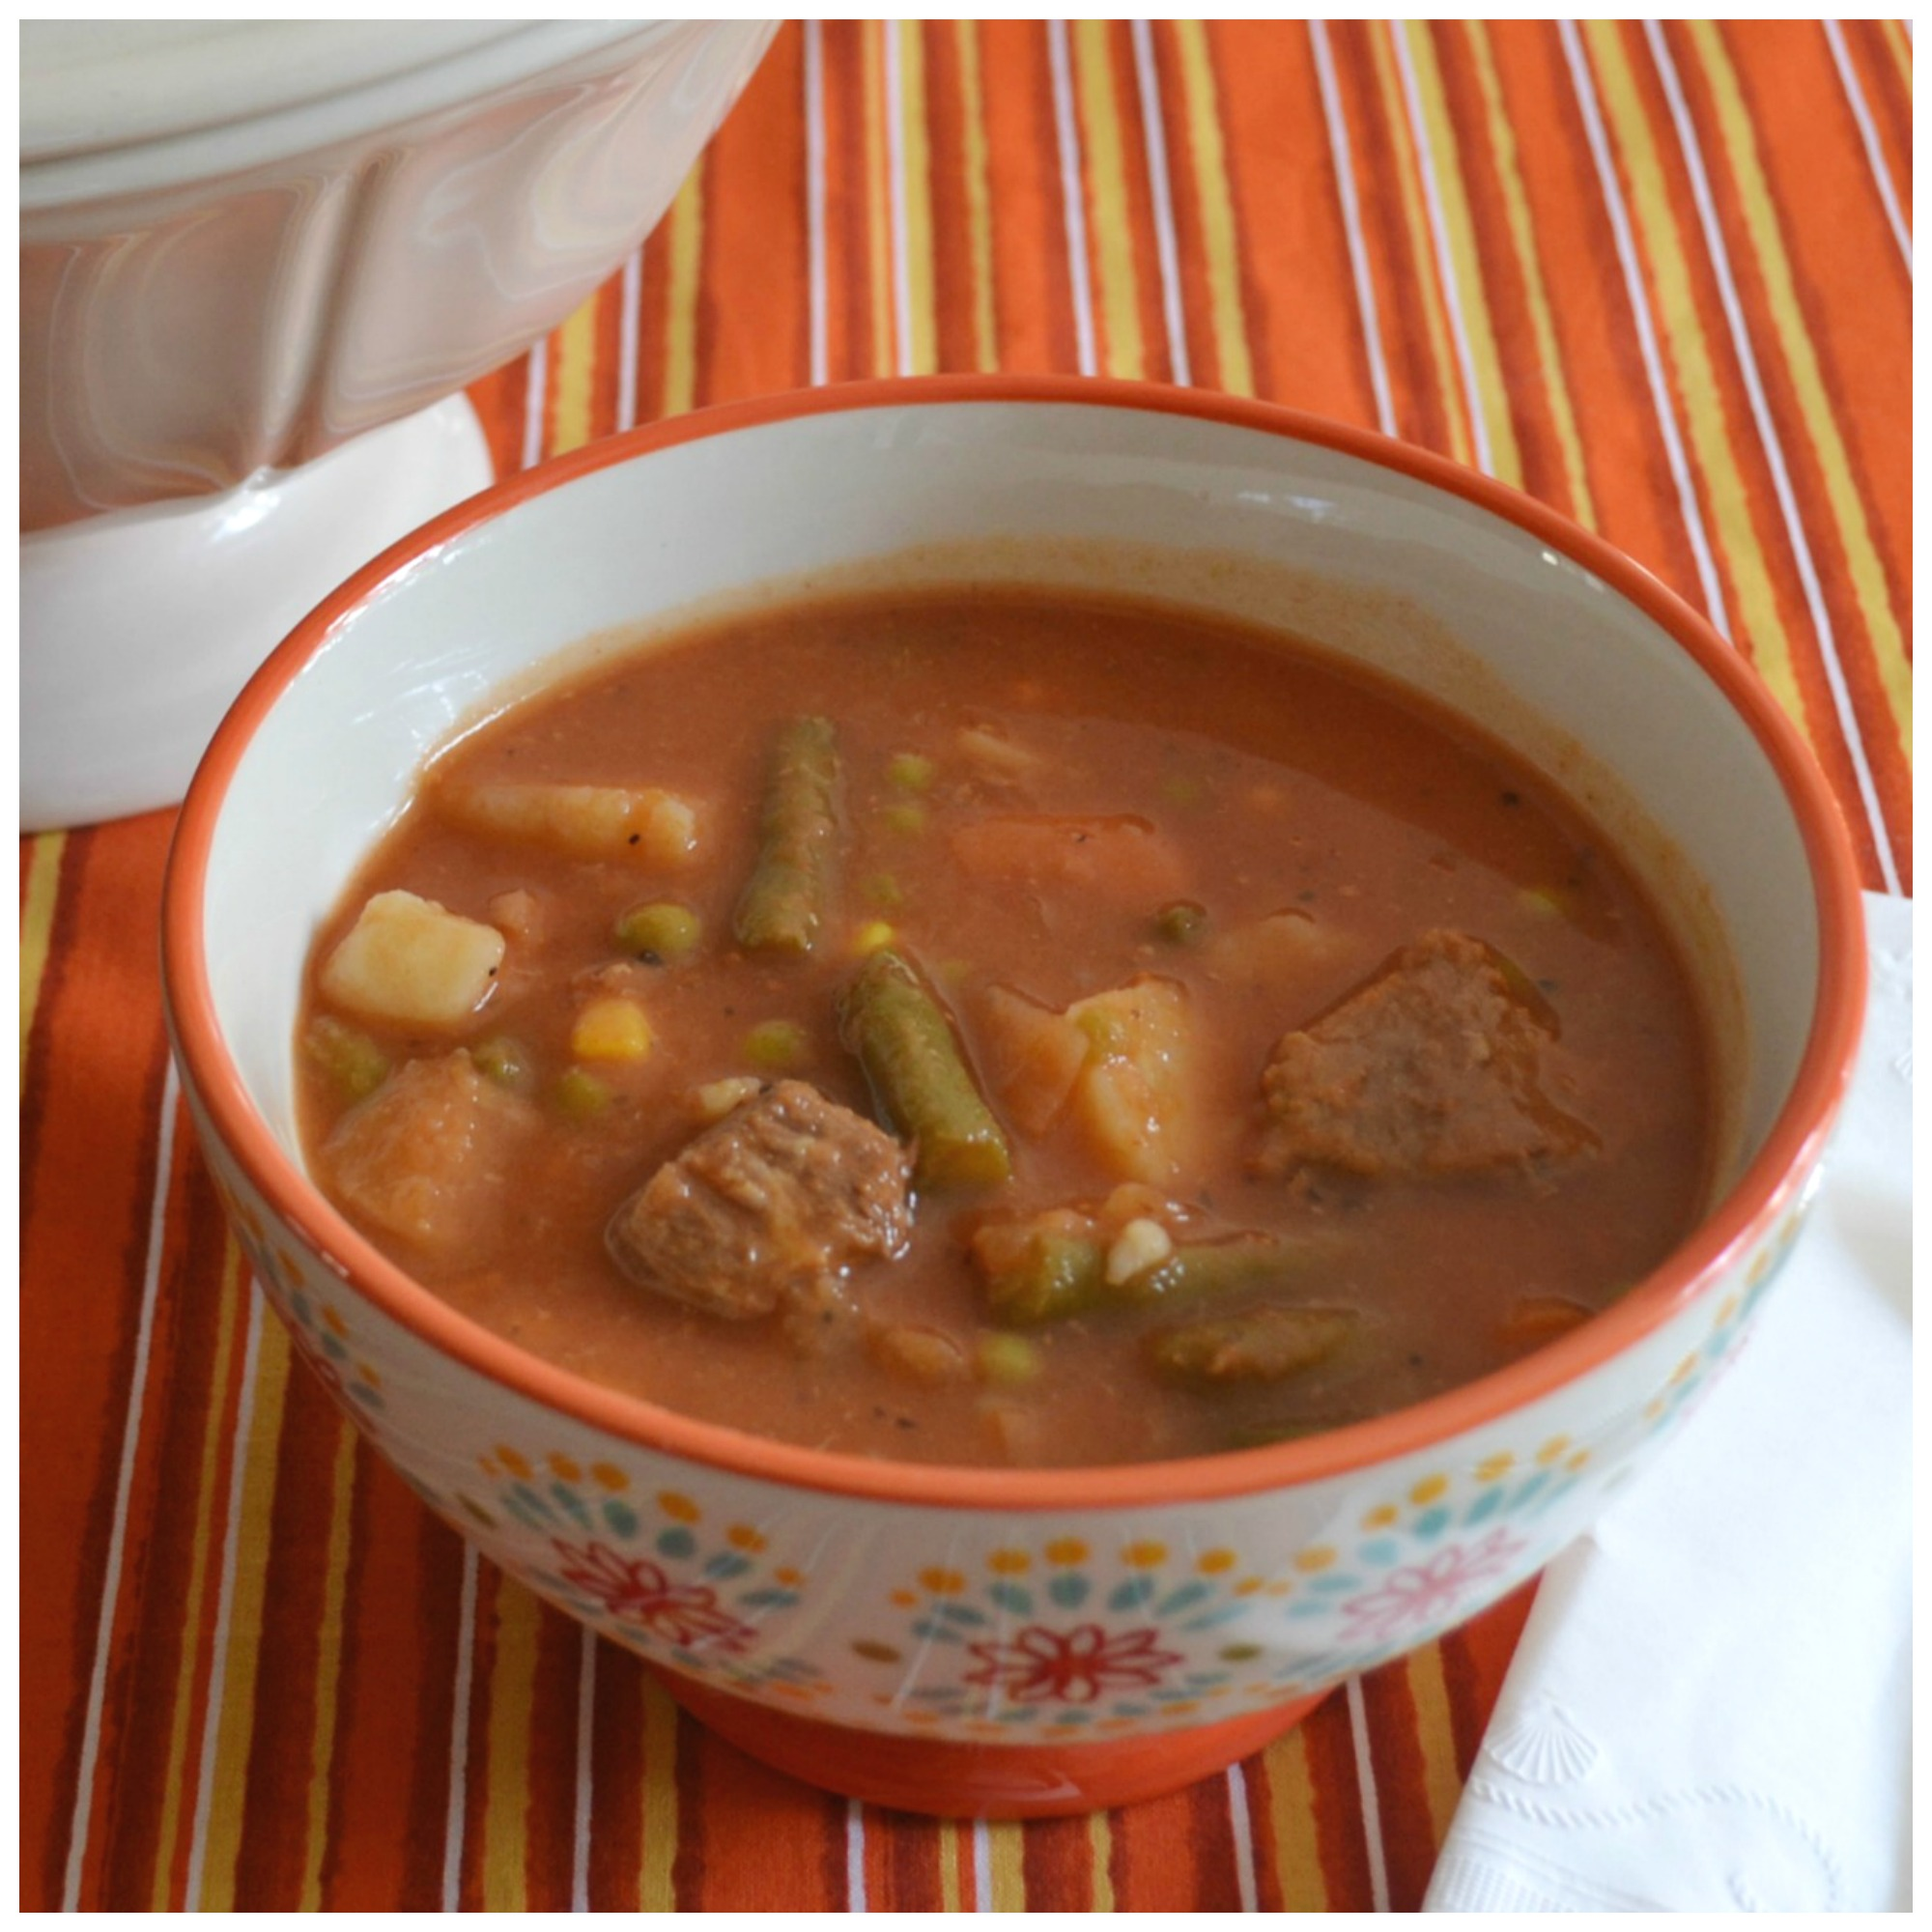 An old fashioned, homemade soup packed with tender beef and vegetables. soup, vegetables